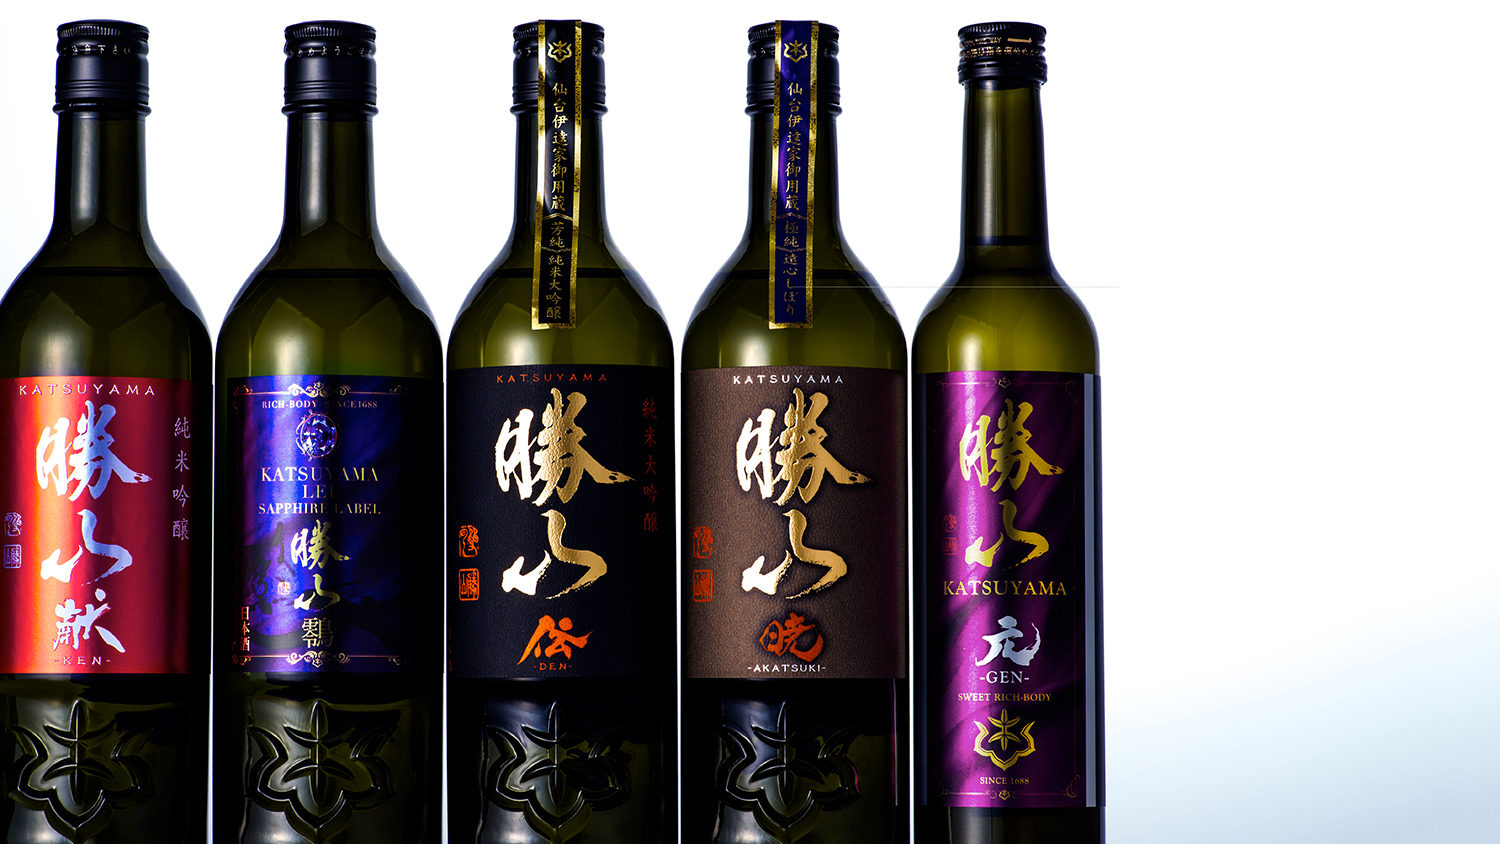 How a 300-Year-Old Brewery Makes Some of Japan's Finest Sake